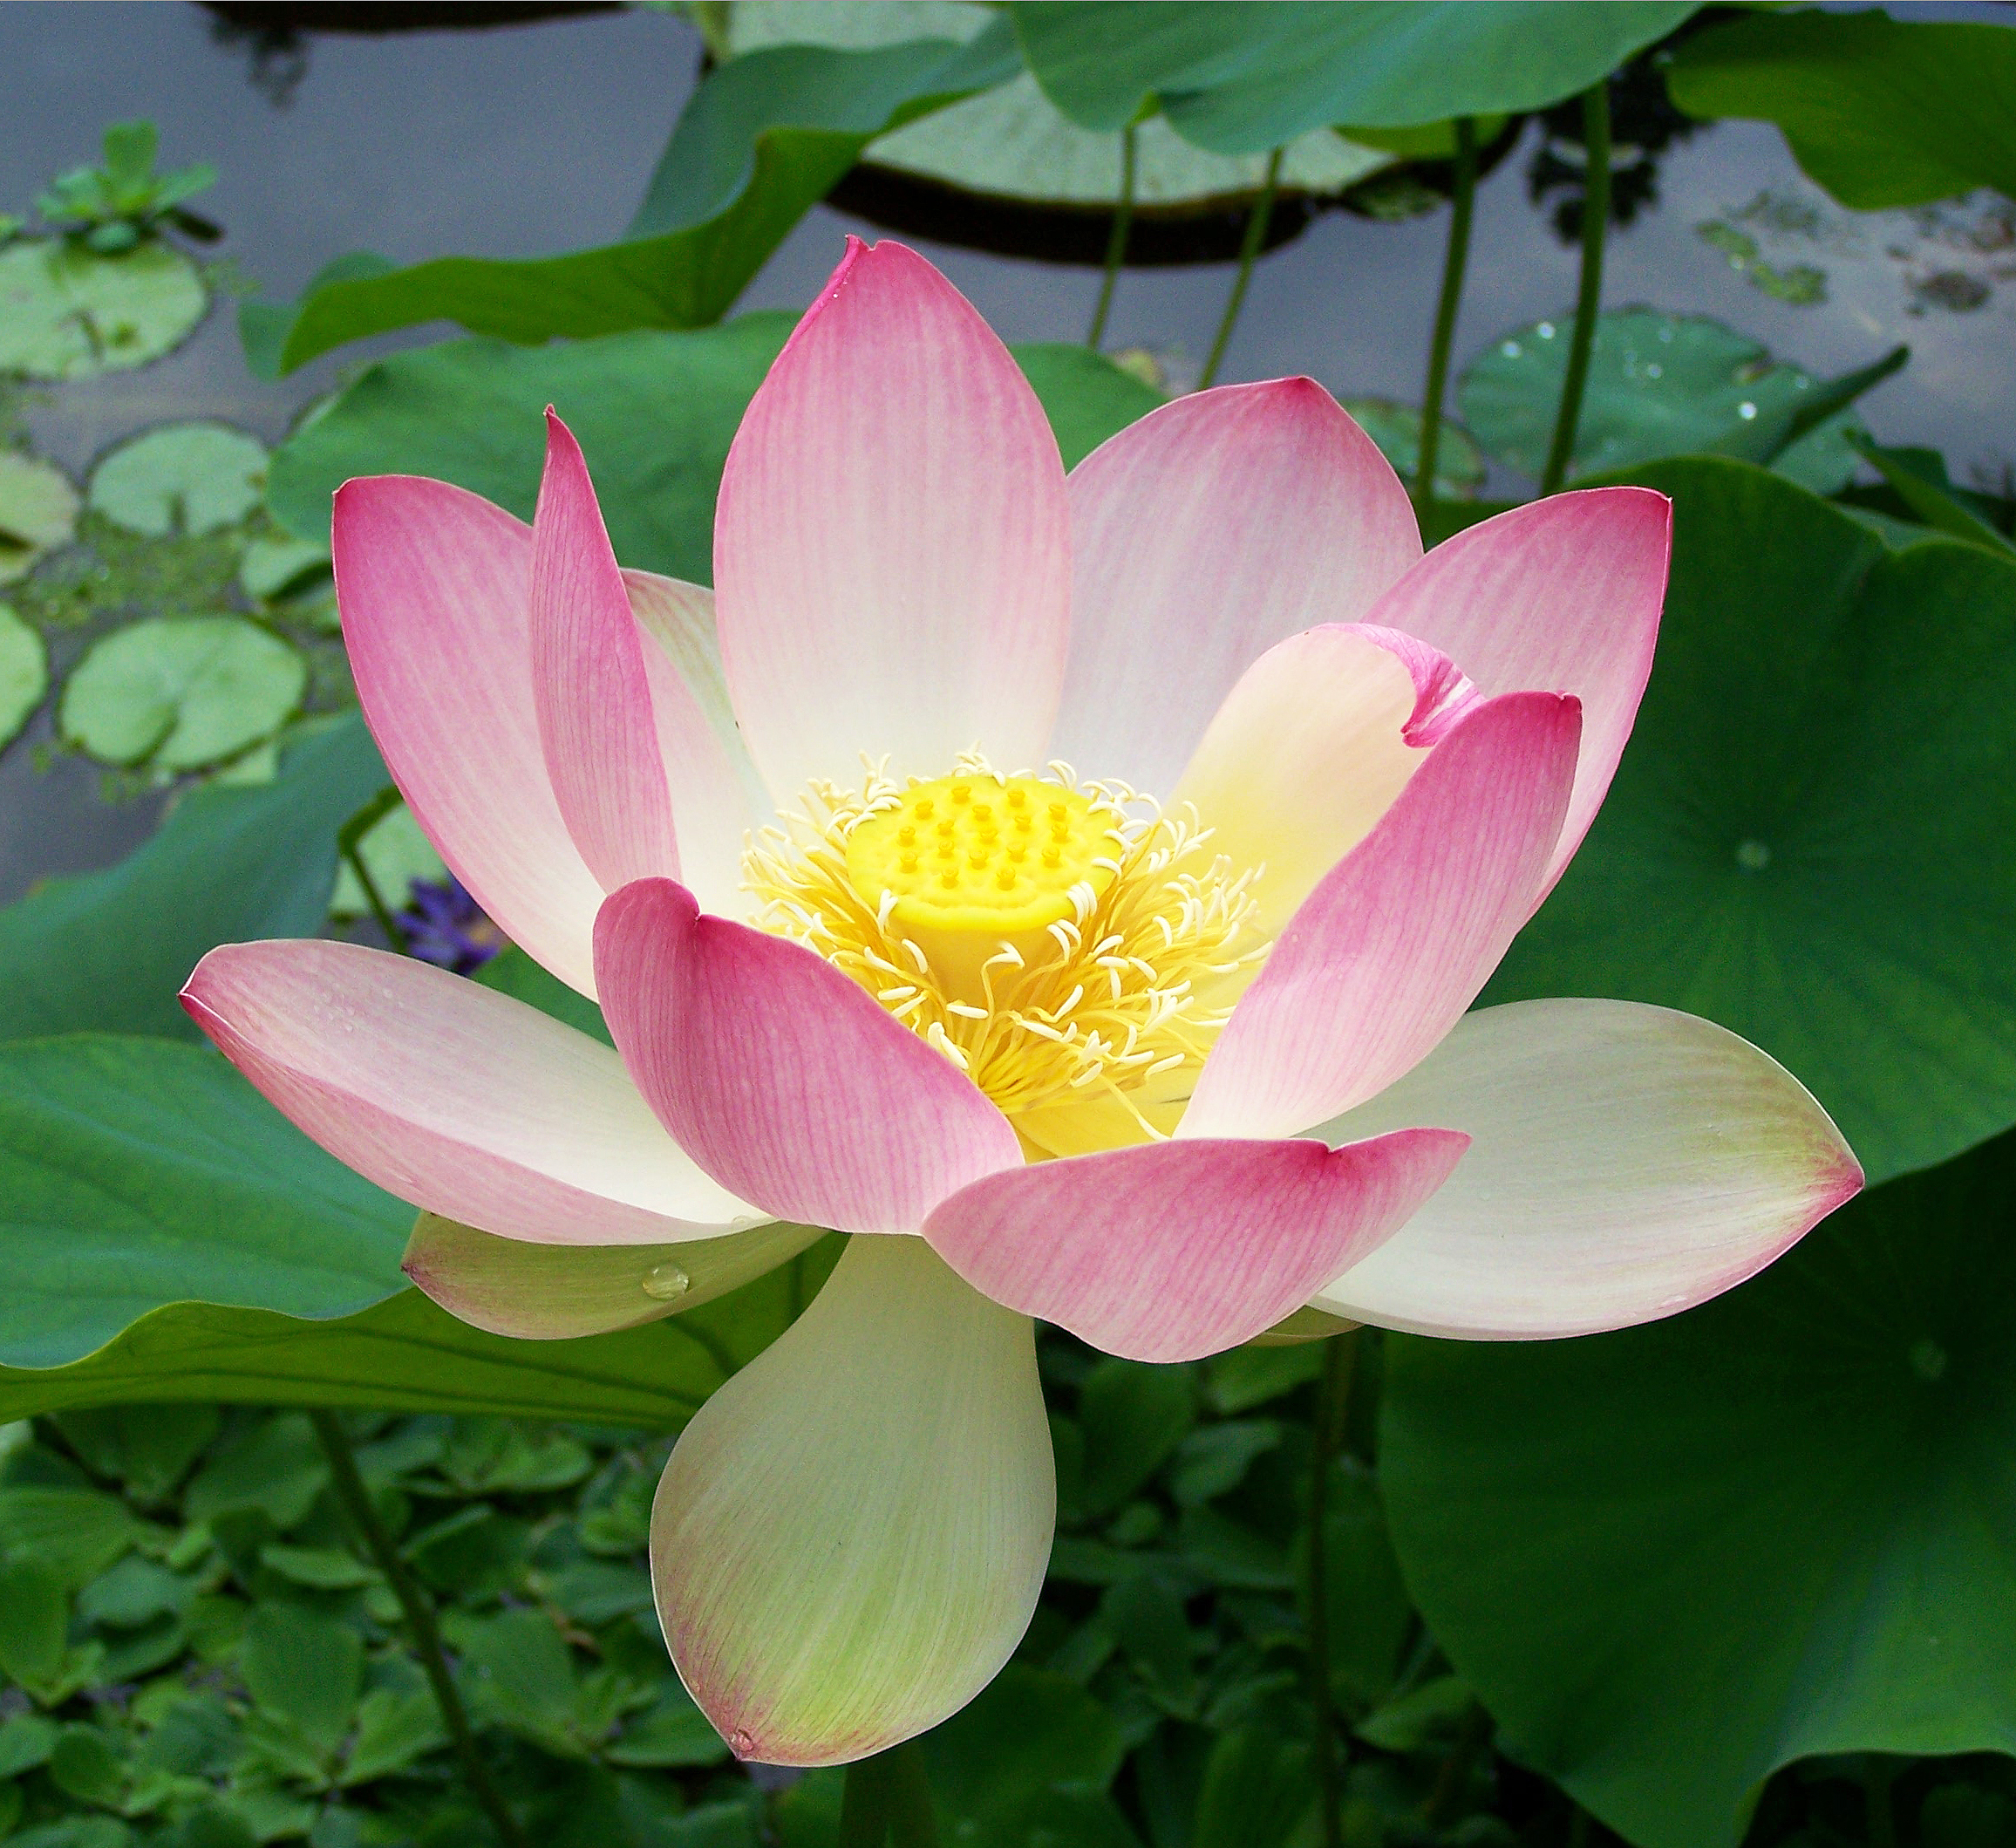 http://upload.wikimedia.org/wikipedia/commons/e/ed/Sacred_lotus_Nelumbo_nucifera.jpg